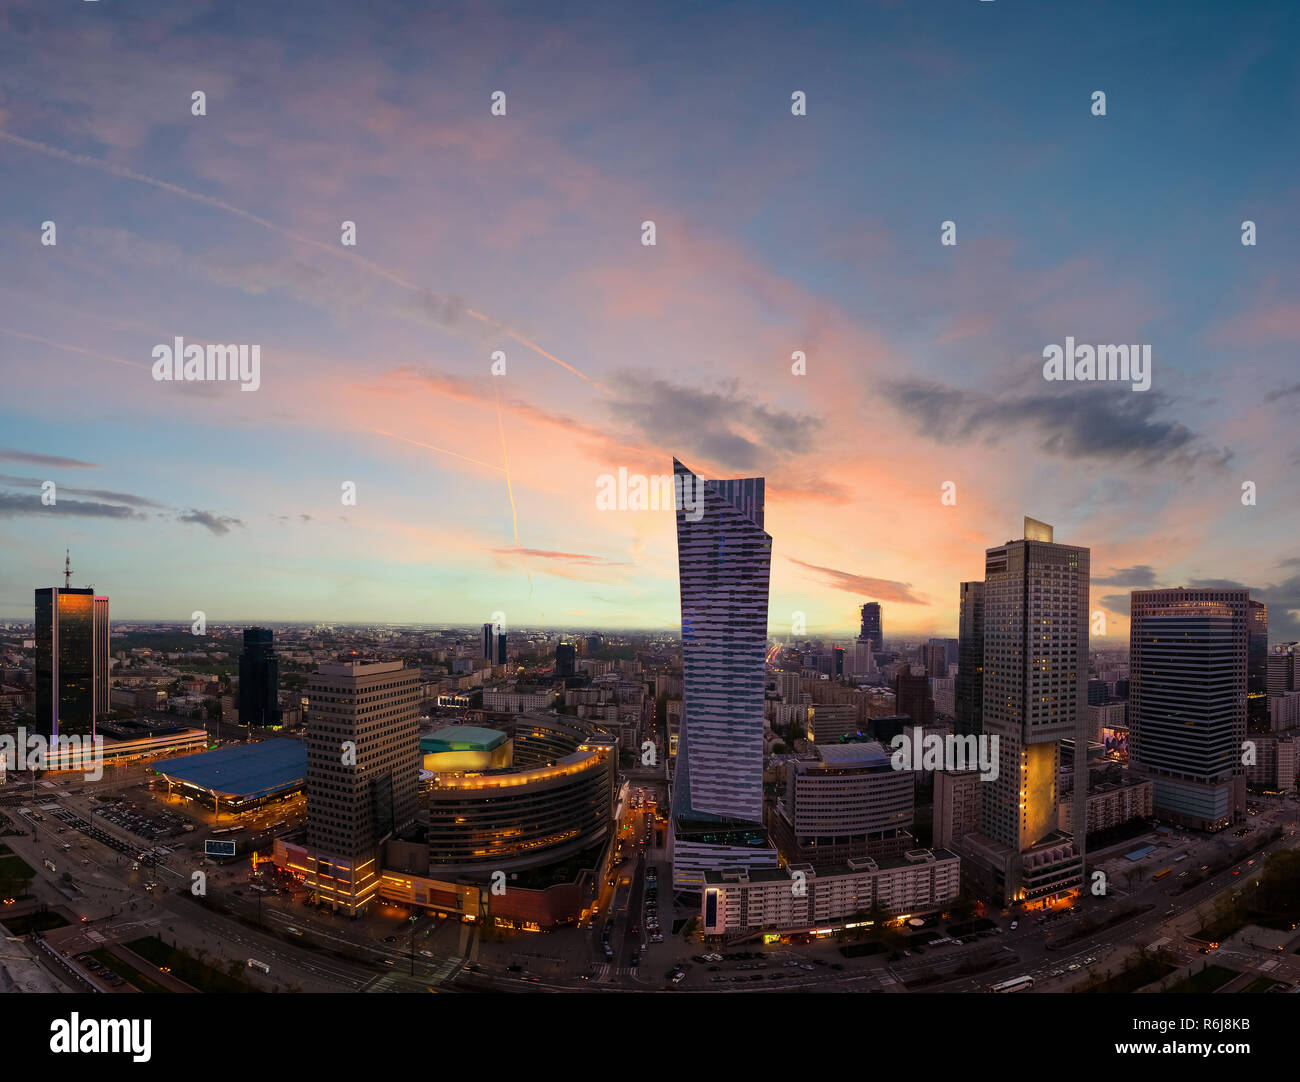 Panorama of Warsaw city with modern skyscraper in sunset time, Poland, Europe. - Stock Image